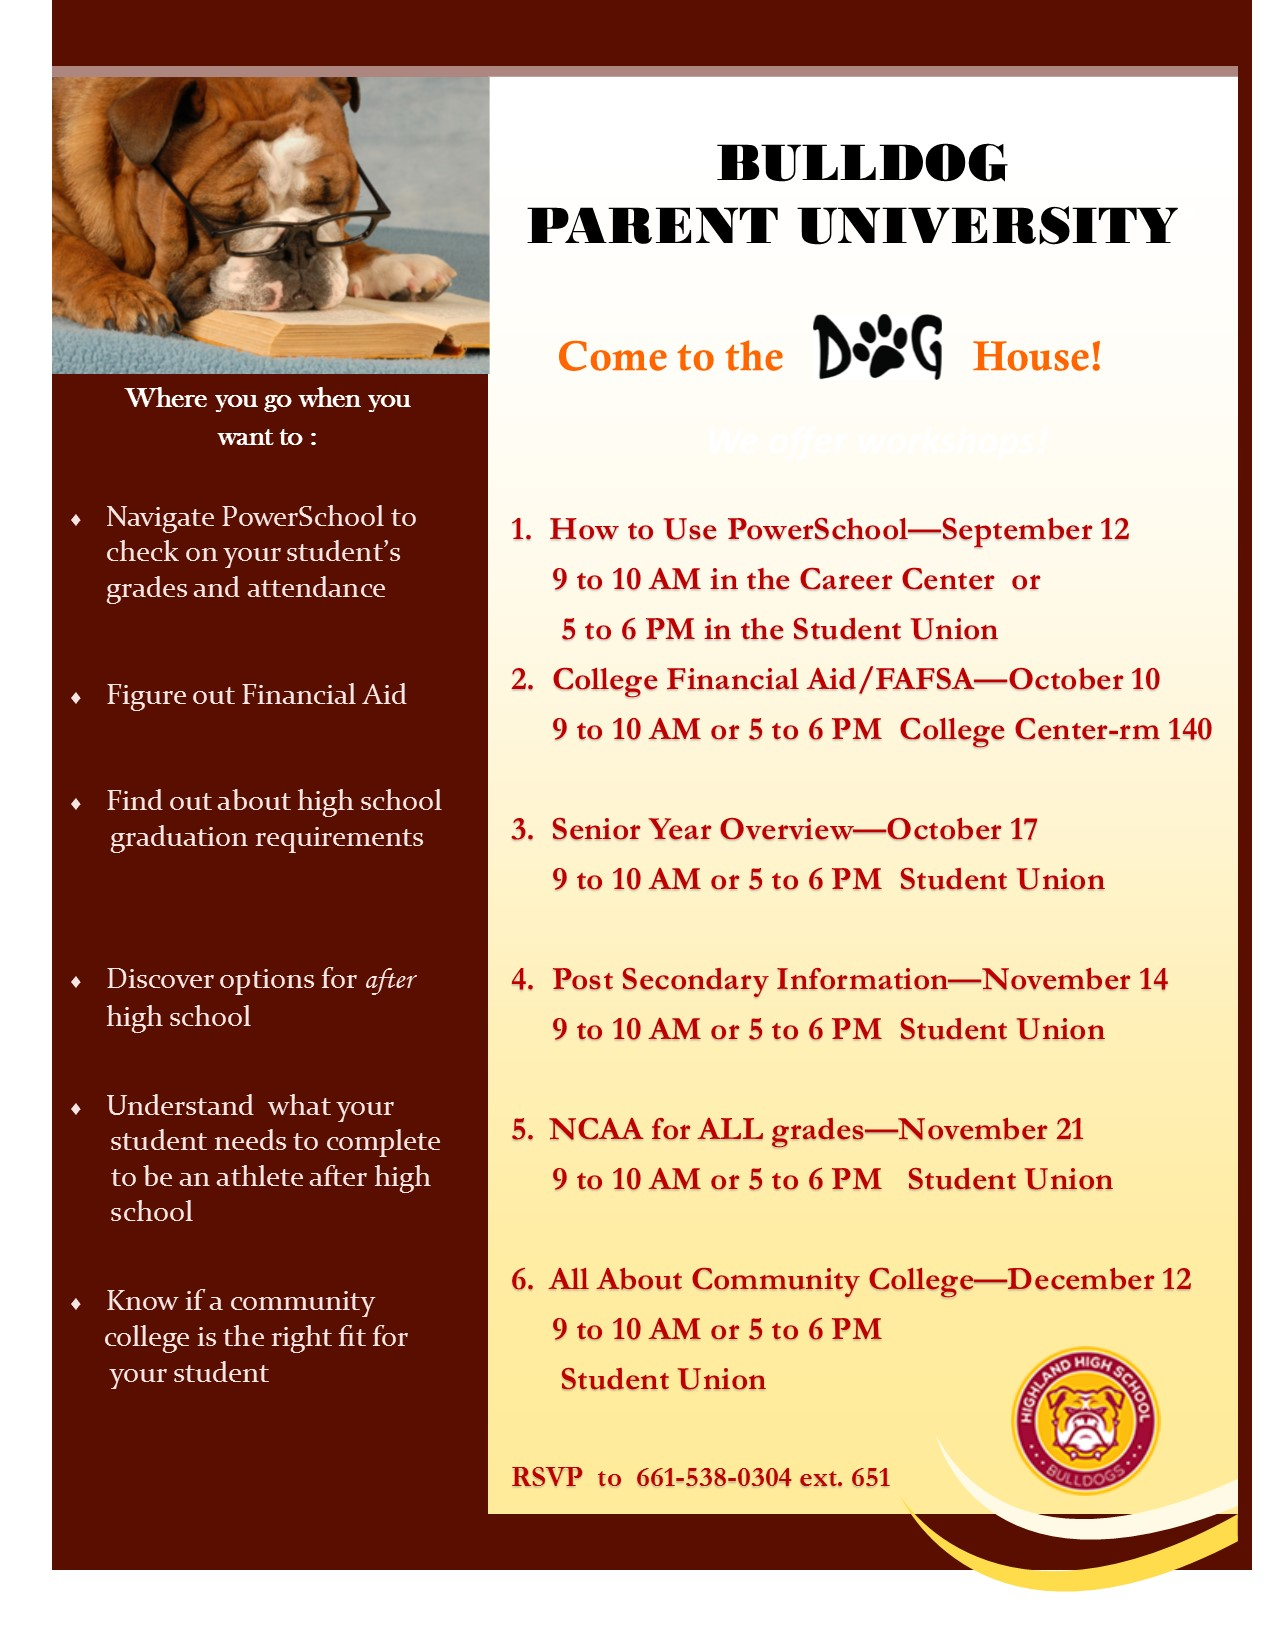 Bulldog Parent University